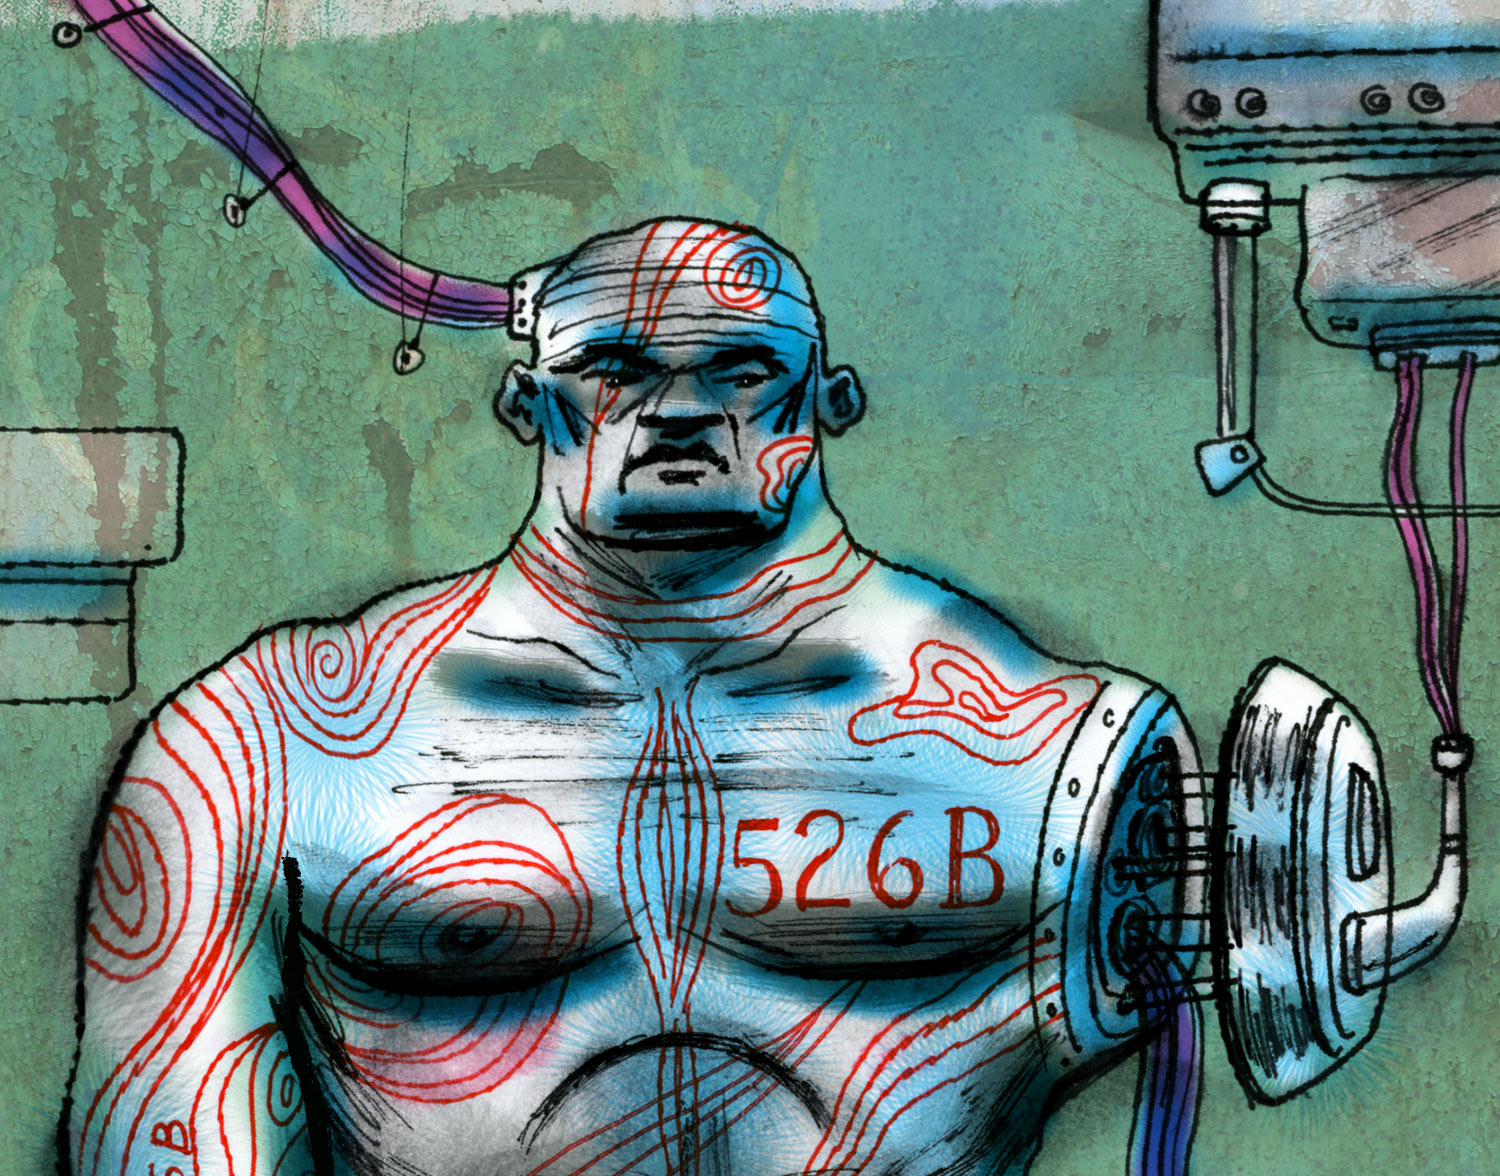 above ^  Sci-Fi character sketch (DETAIL) by  Steven Salerno … a cyborg warrior repair station depicting a unit having its arm being repaired and replaced. (ink/gouache/collage/digital) visit  stevensalerno.com